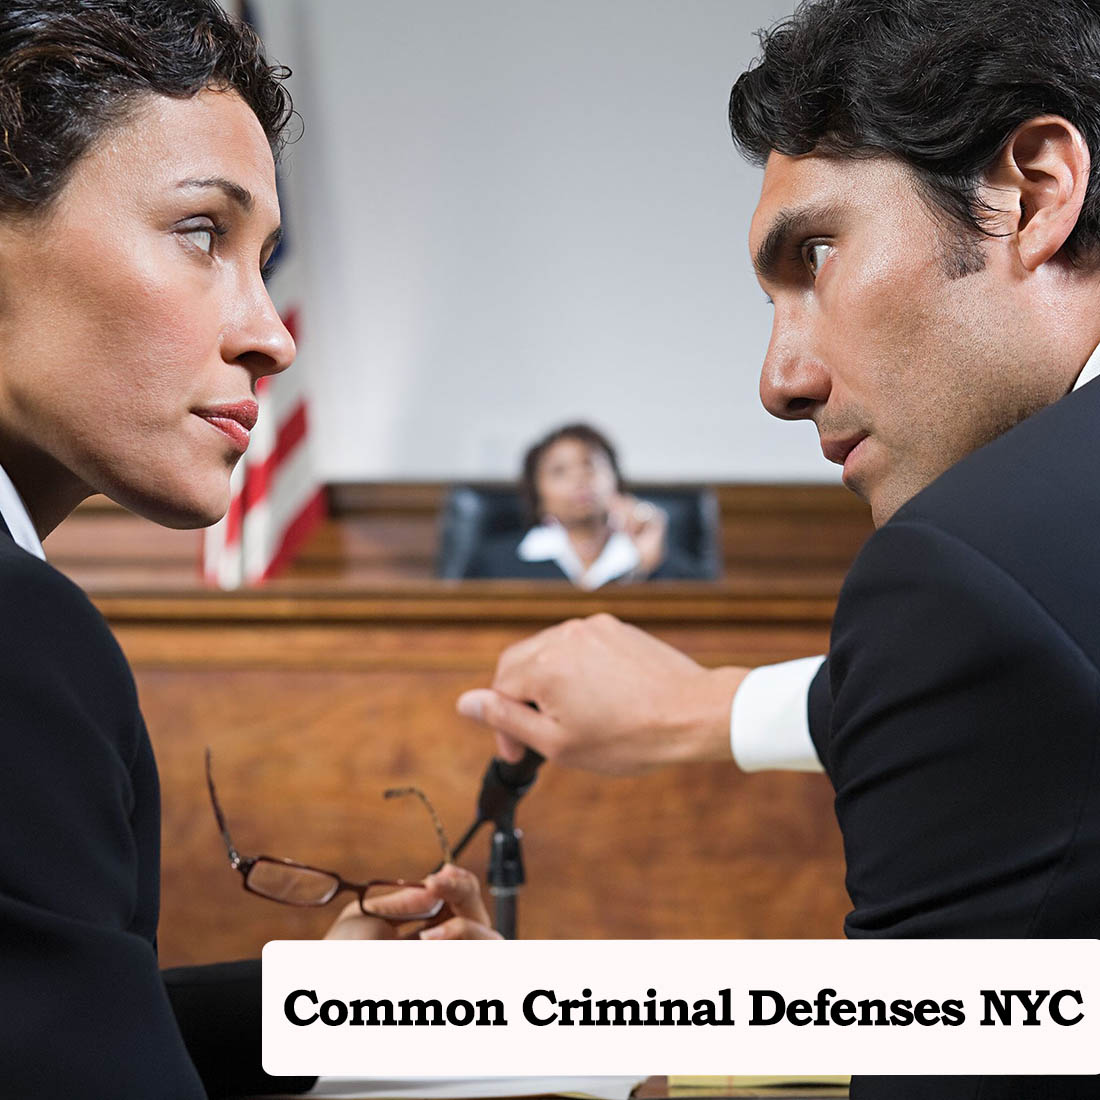 Common Criminal Defenses in New York